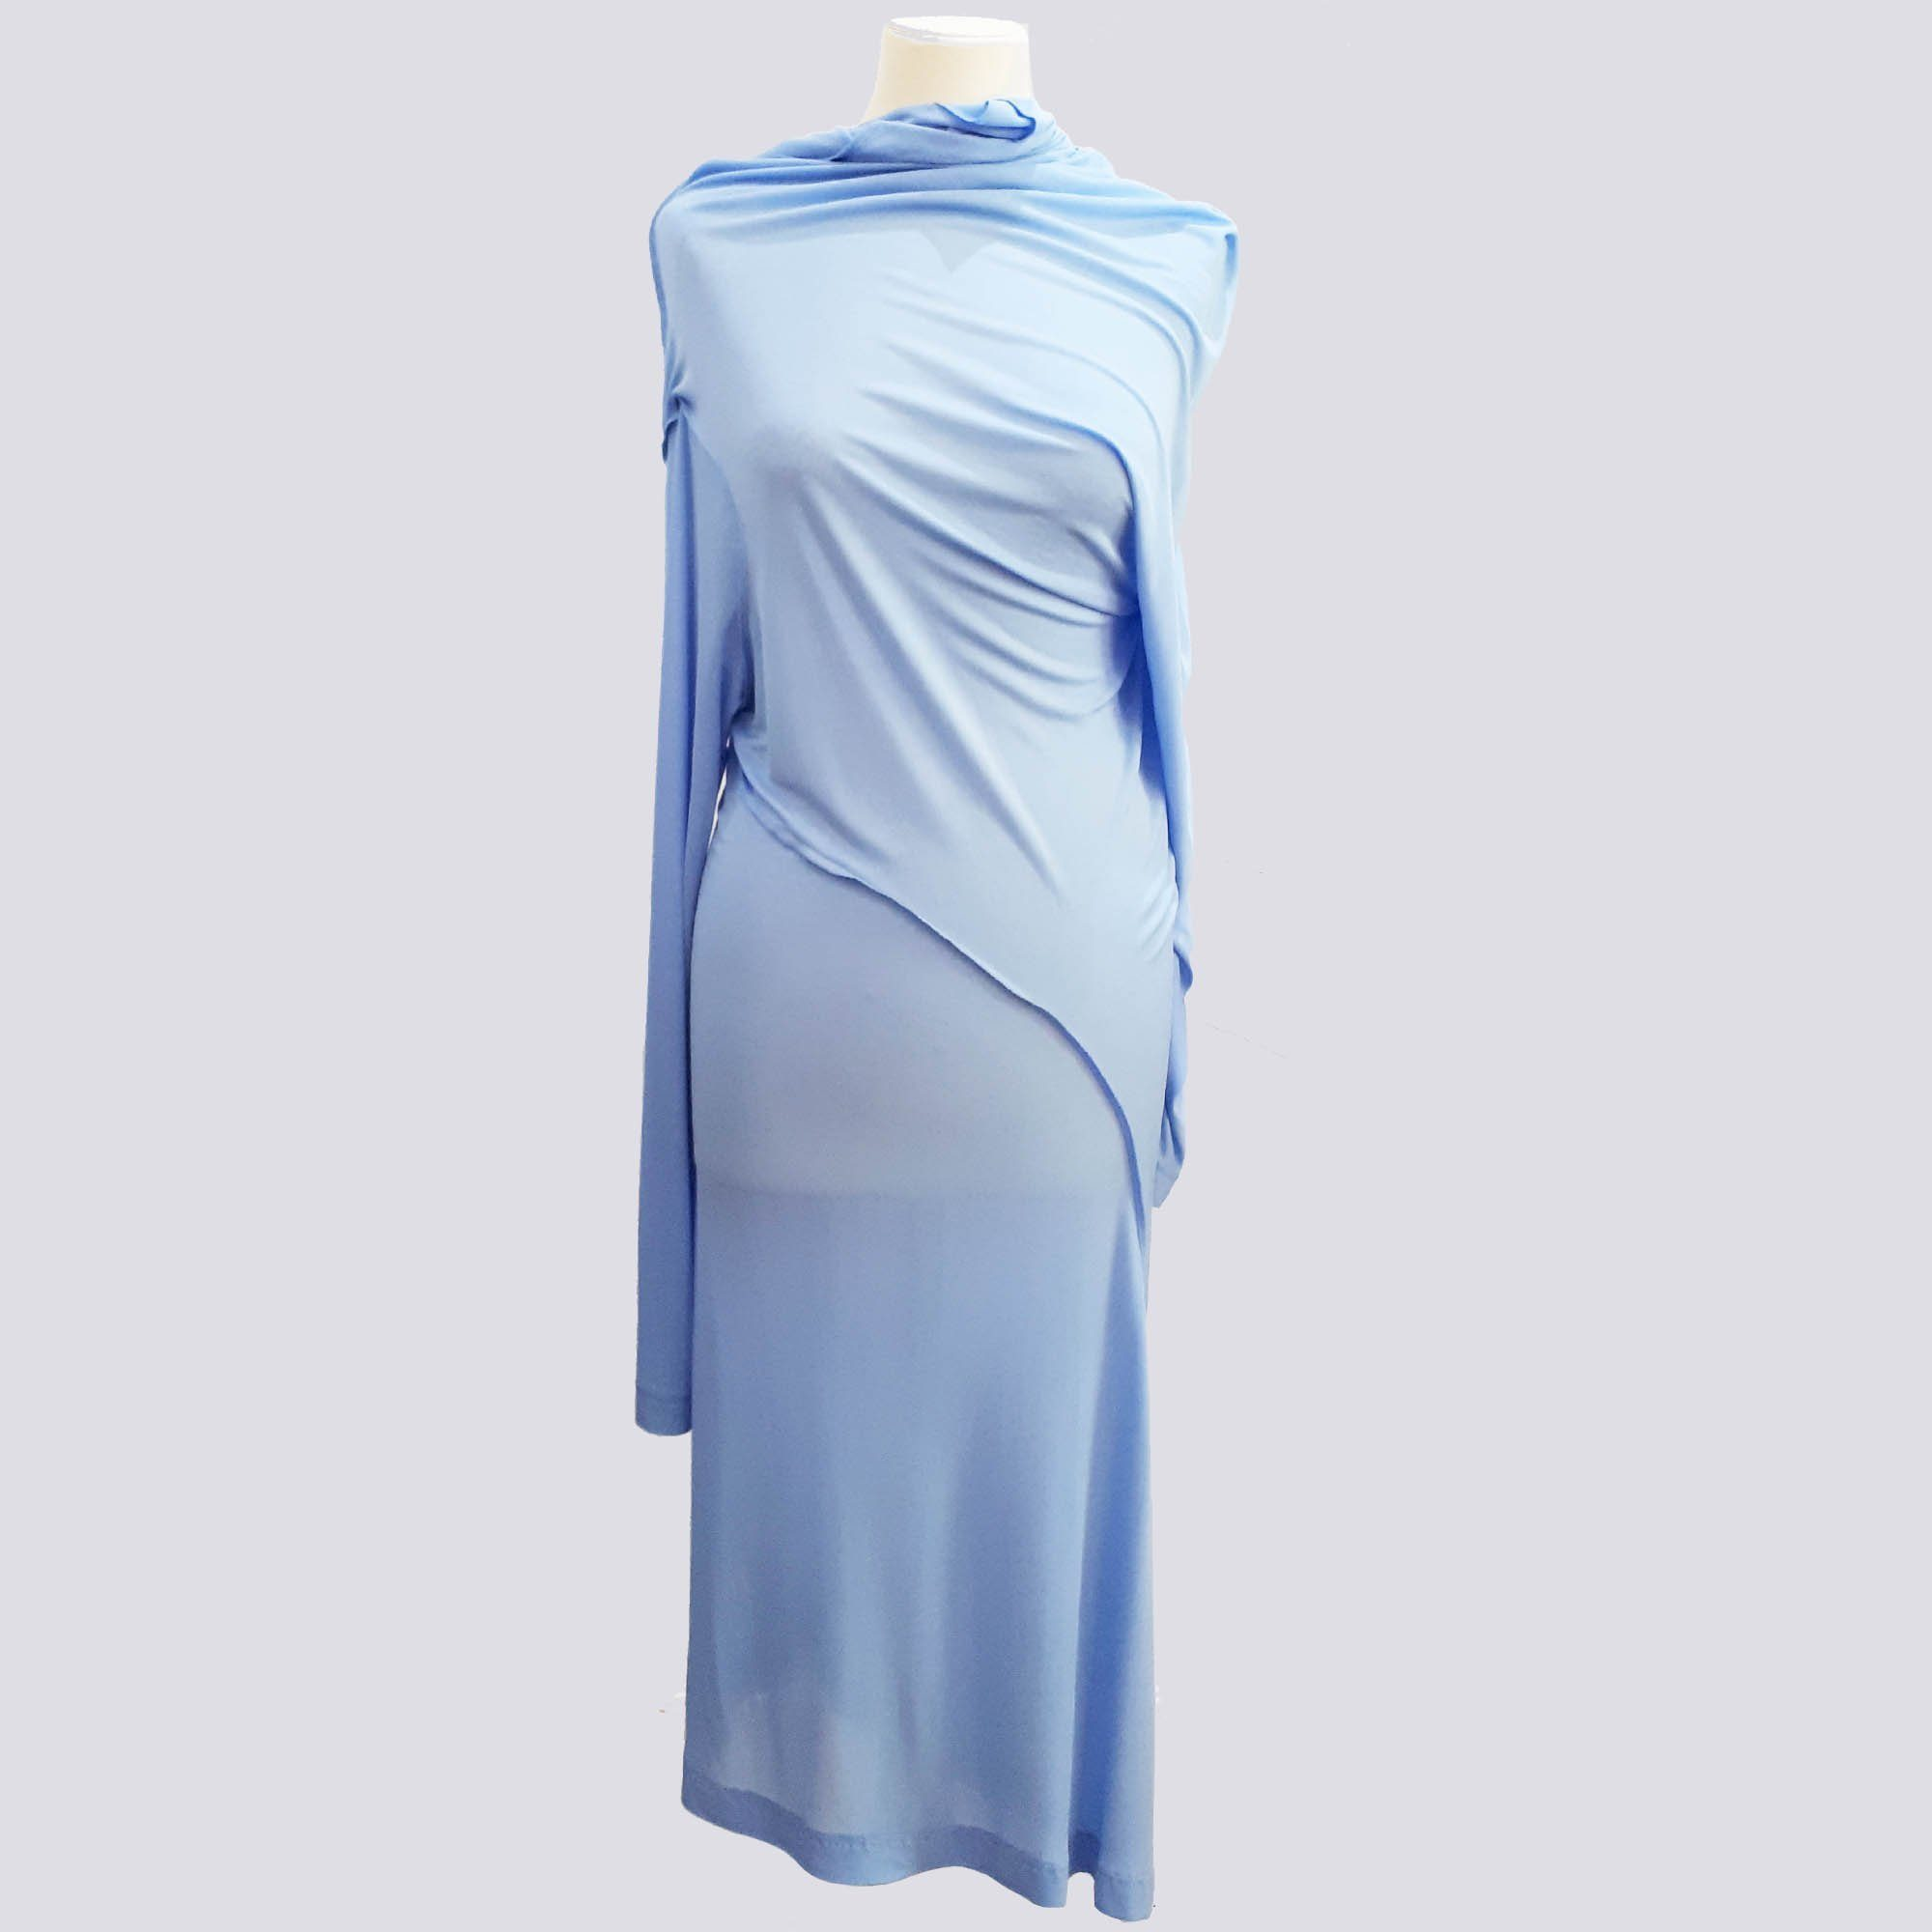 Celine Long Sleeve Light Blue Dress